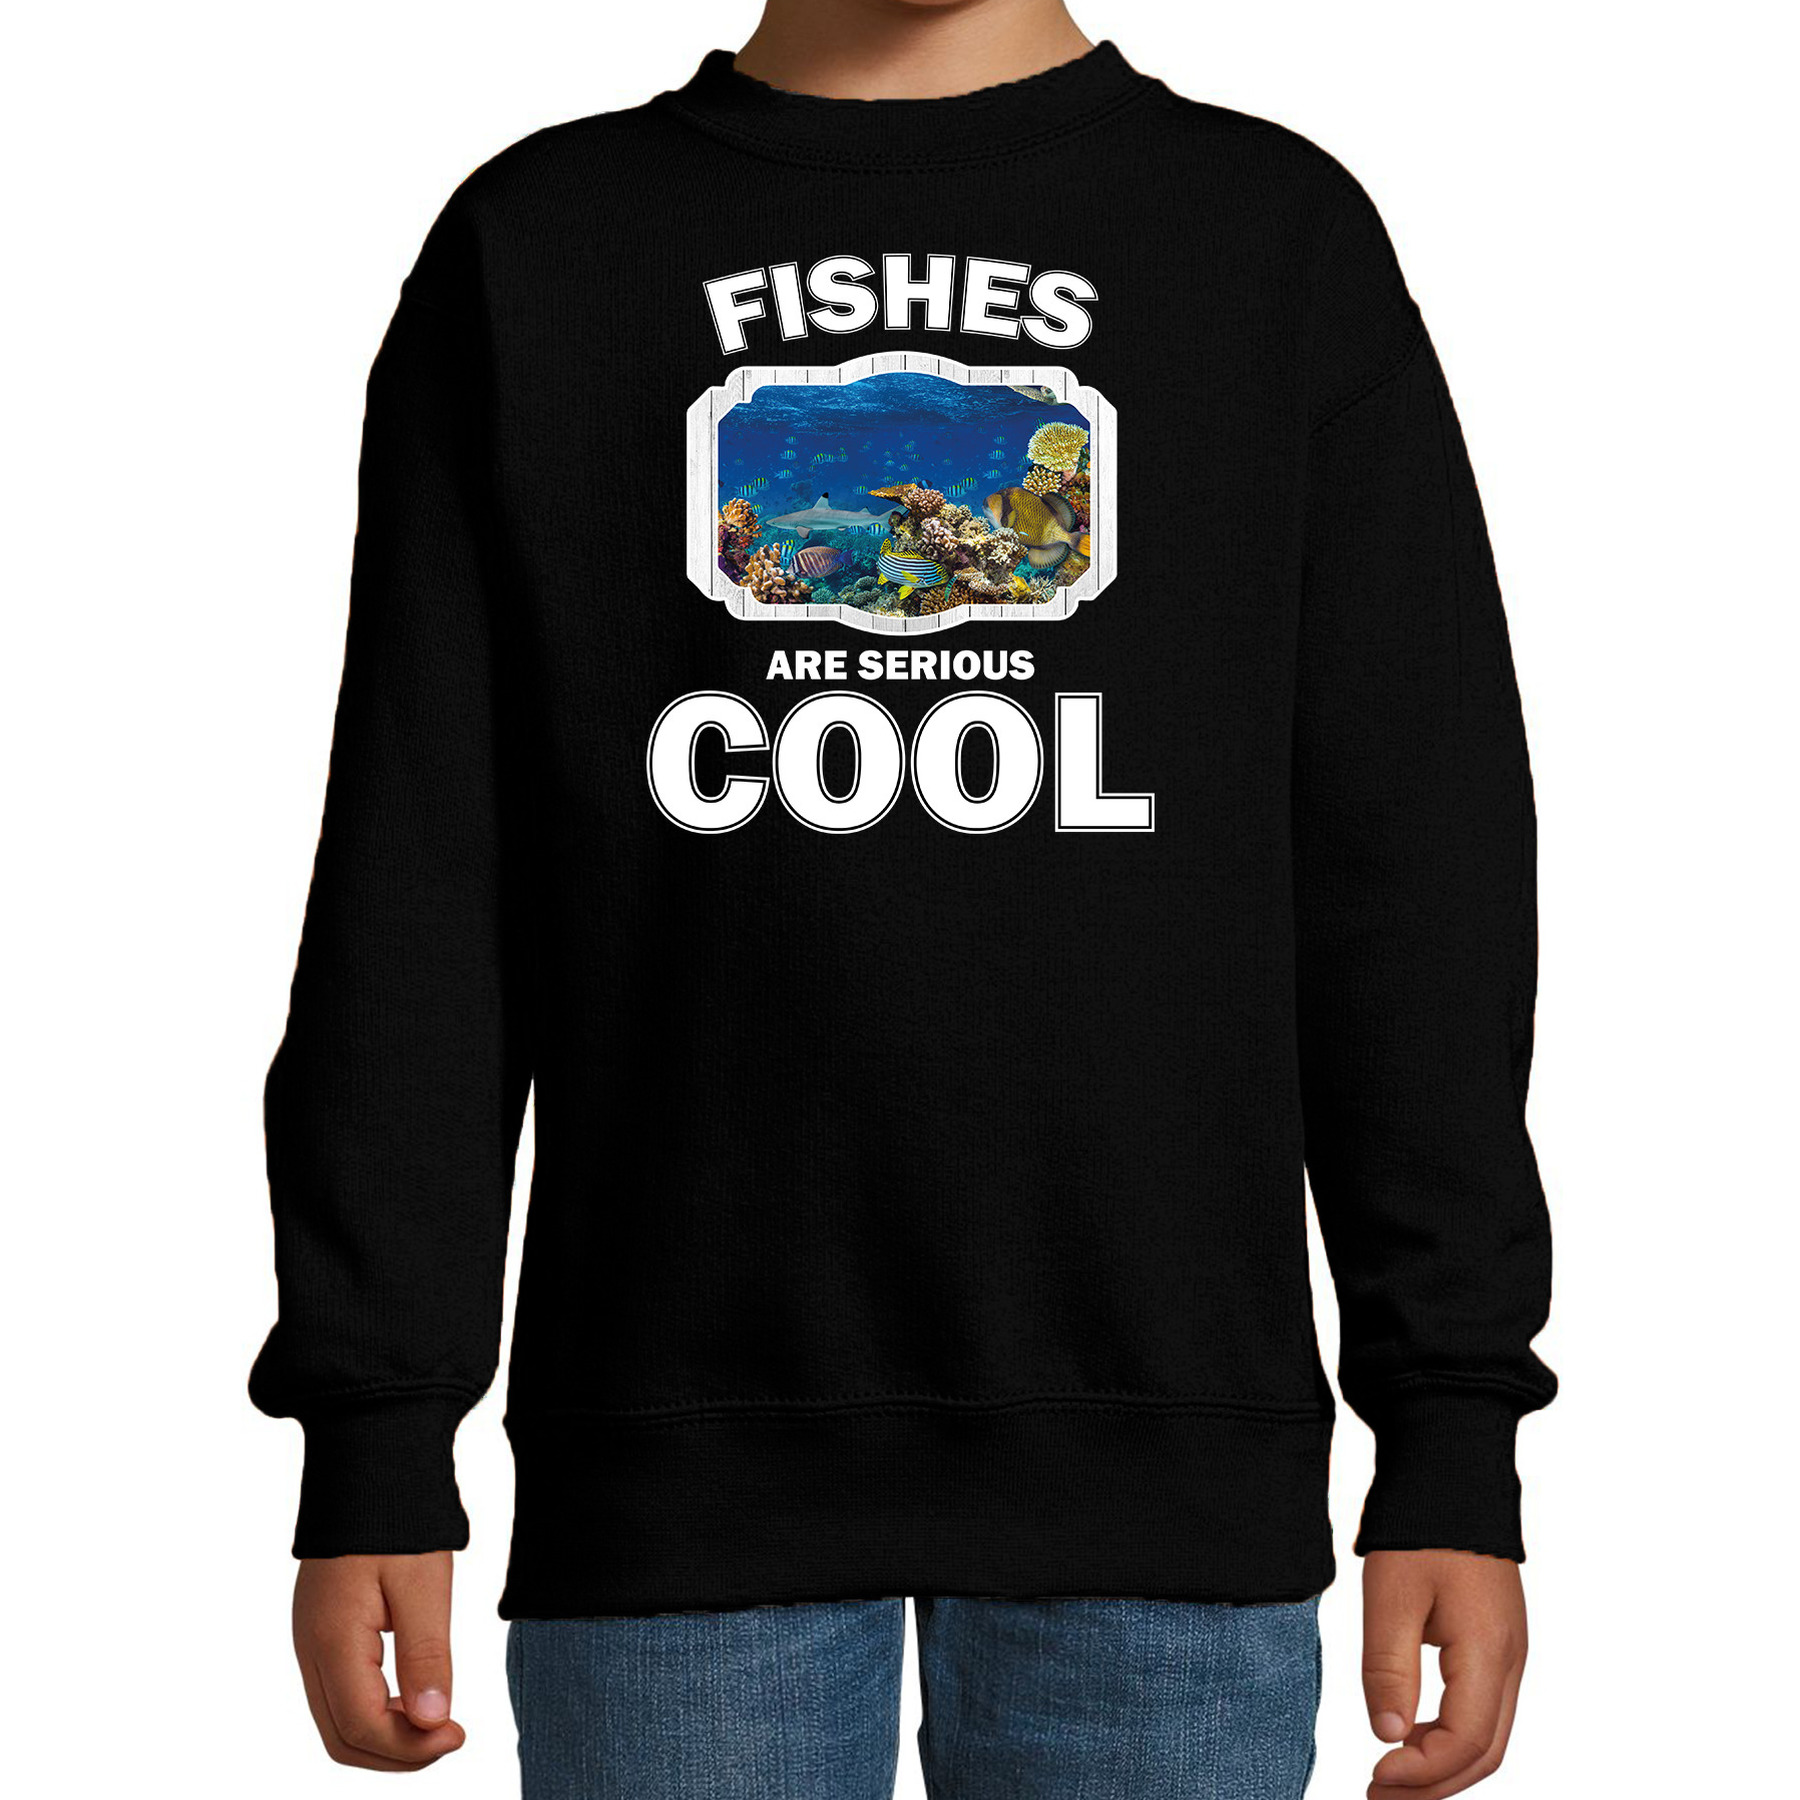 Sweater fishes are serious cool zwart kinderen - vissen/ vis trui